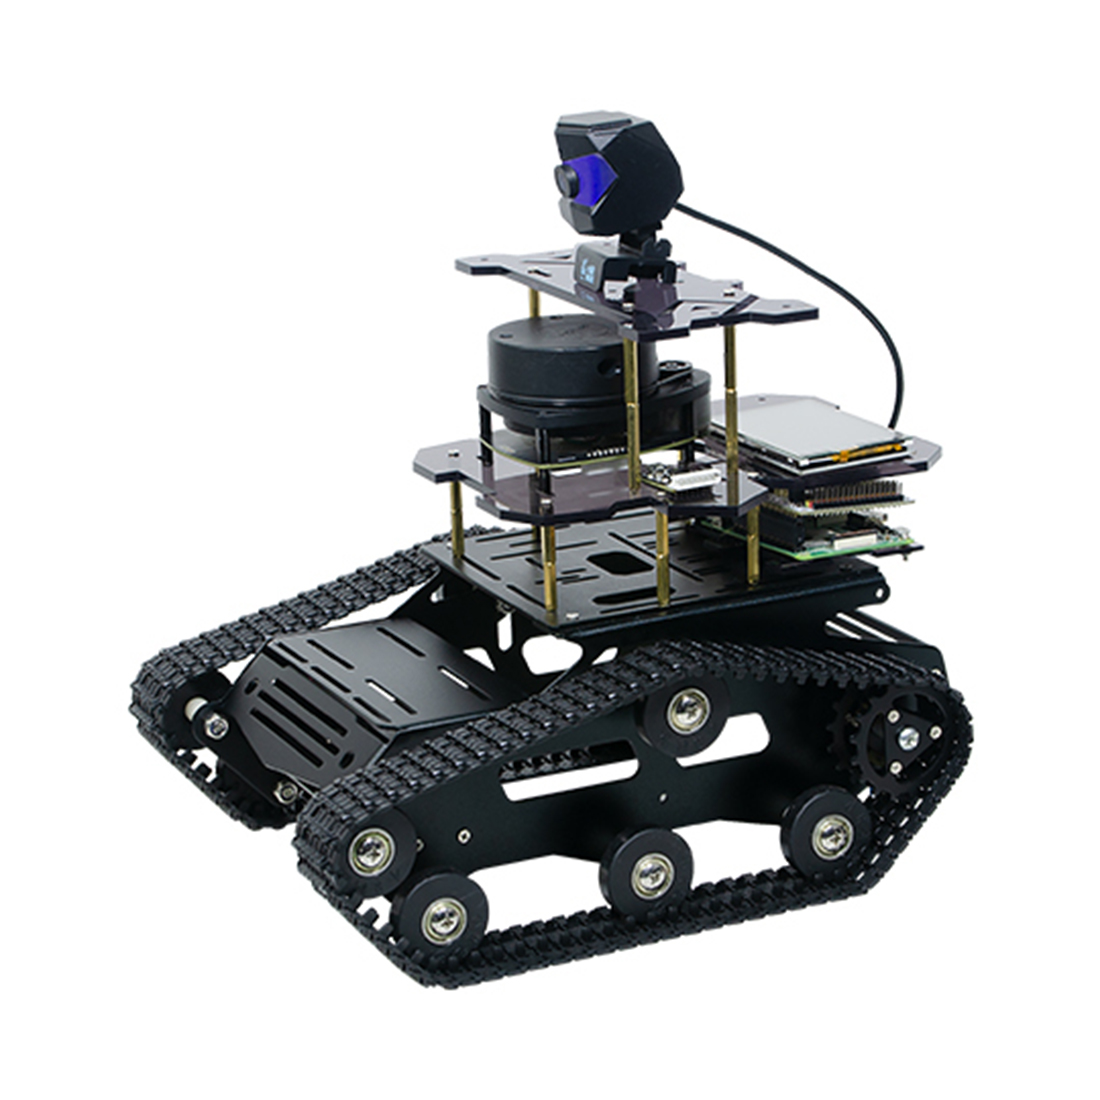 DIY Smart Robot Tank Chassis Car With Laser Radar For Raspberry Pi 4 (2G) For Children Developmental Early Education Toys- Black